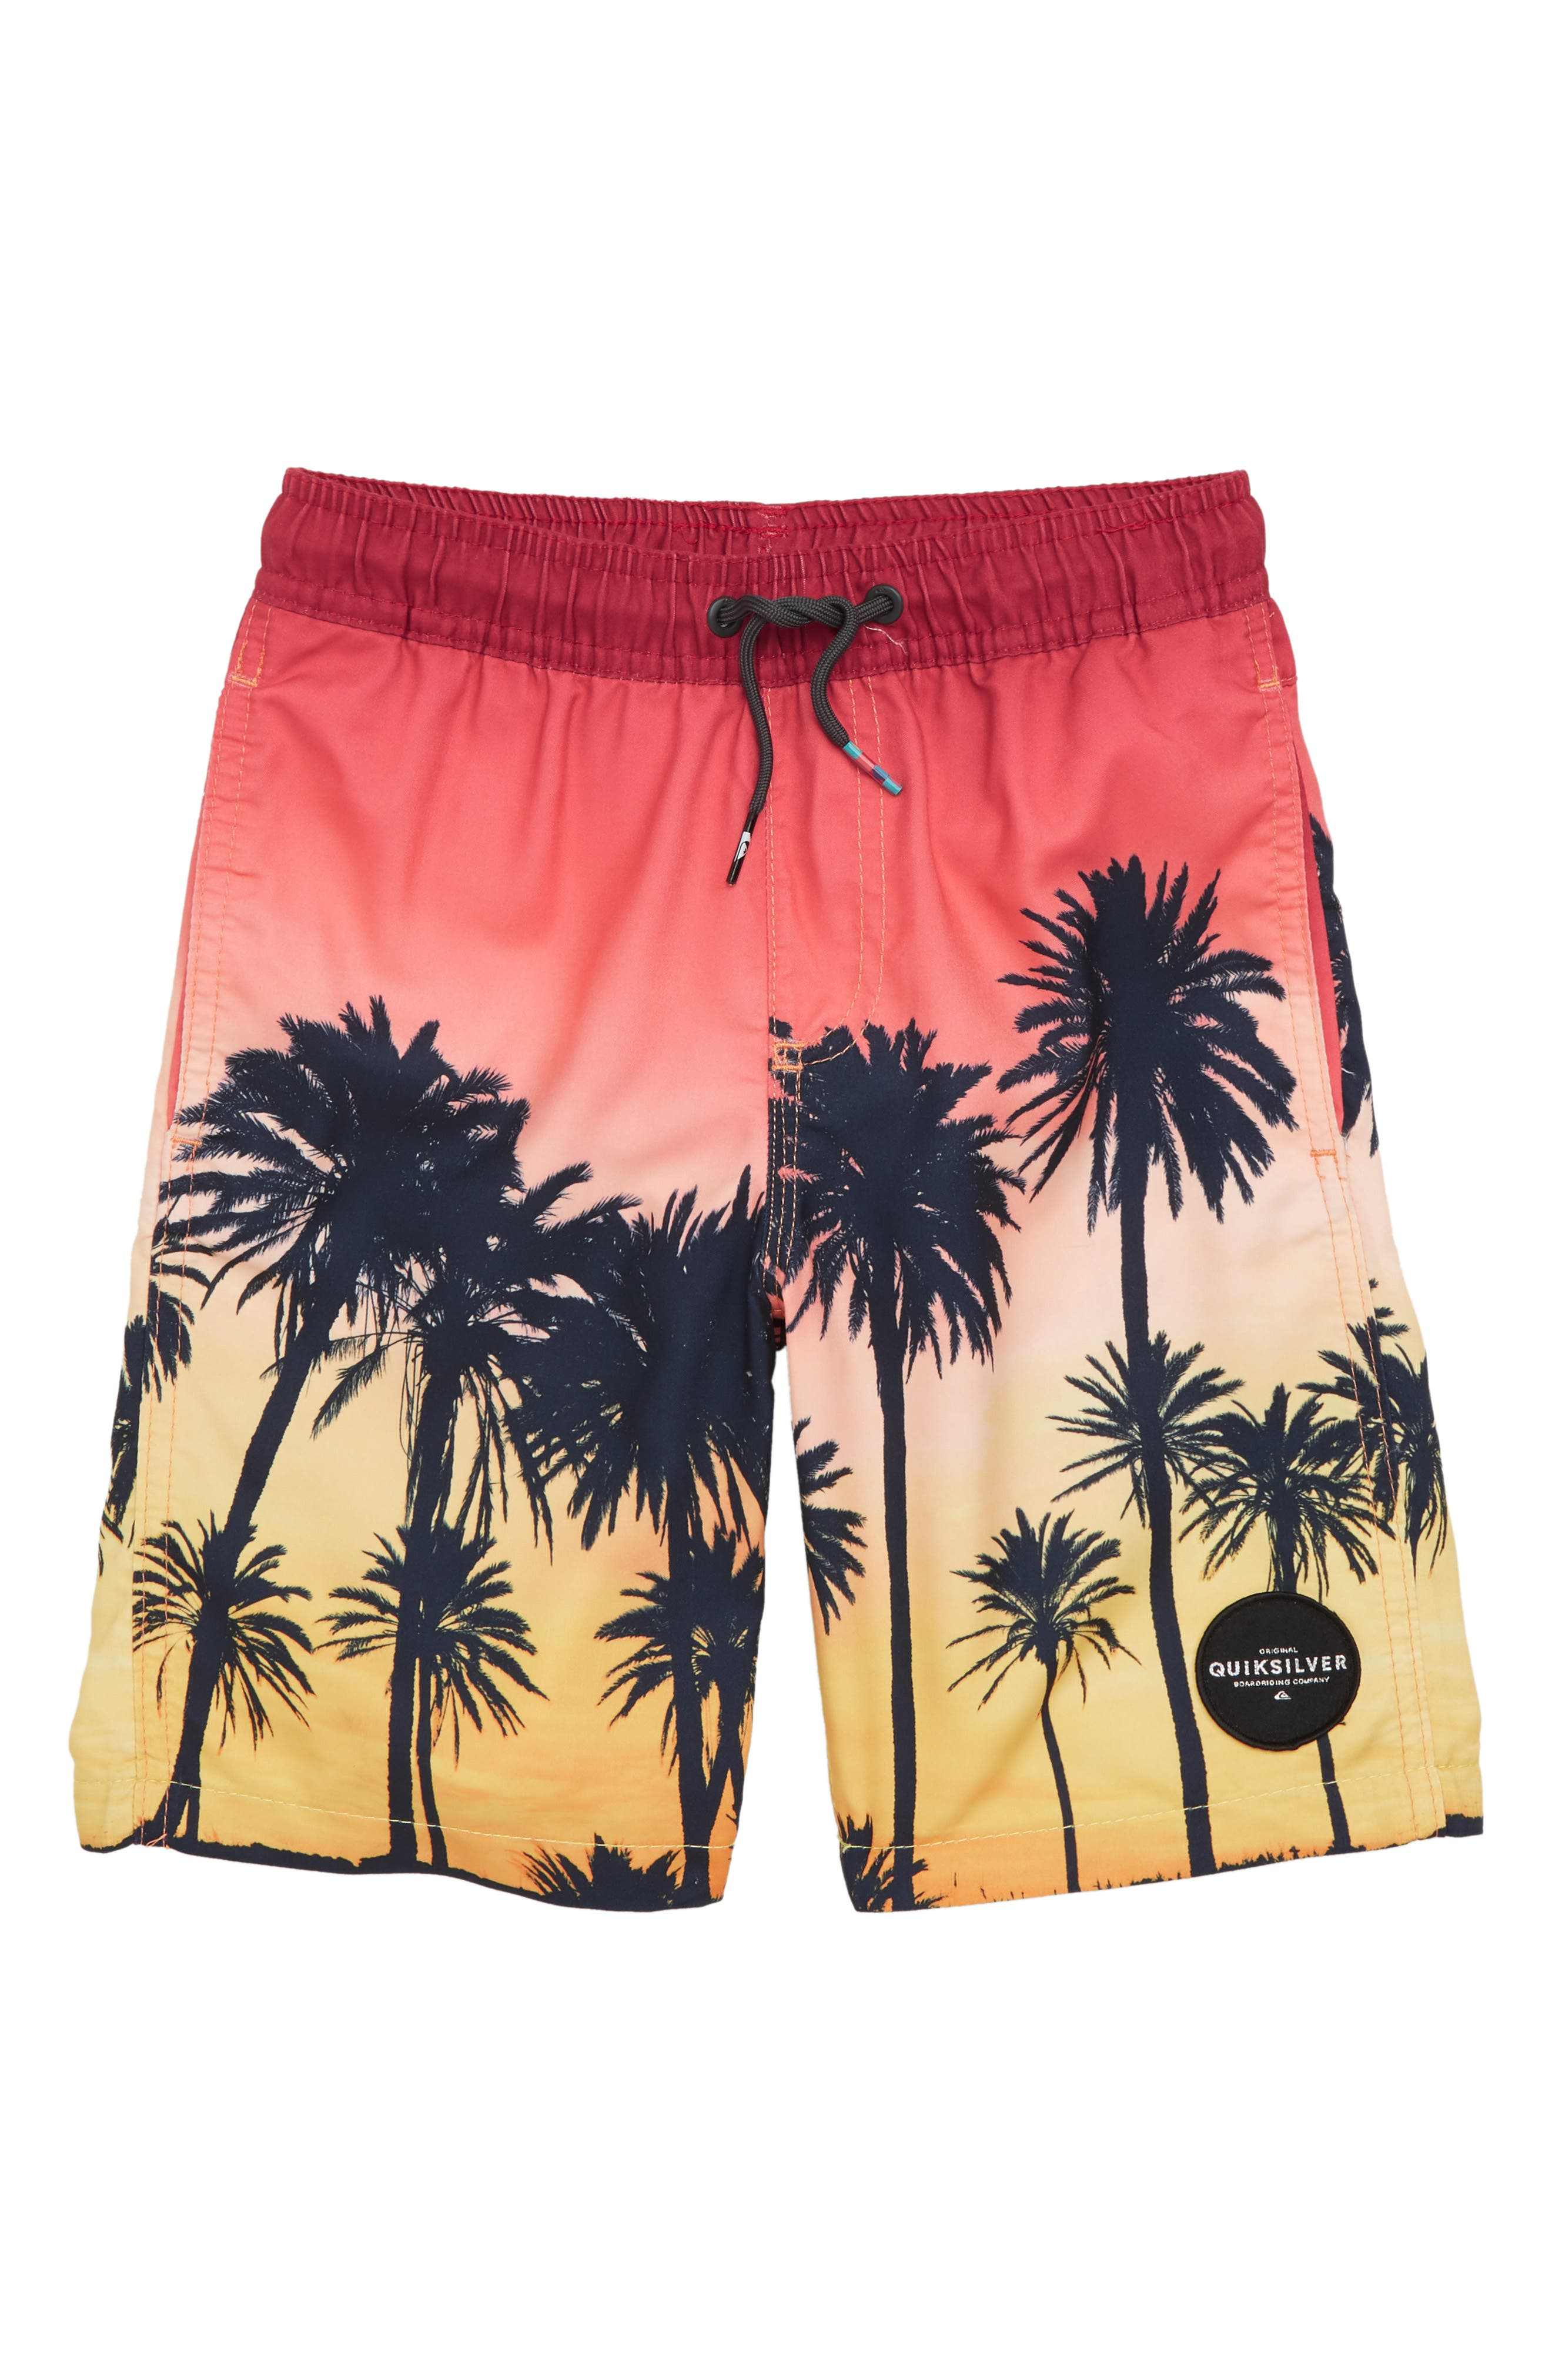 Quiksilver Sunset Vibes Volley Shorts (Toddler Boys & Little Boys)